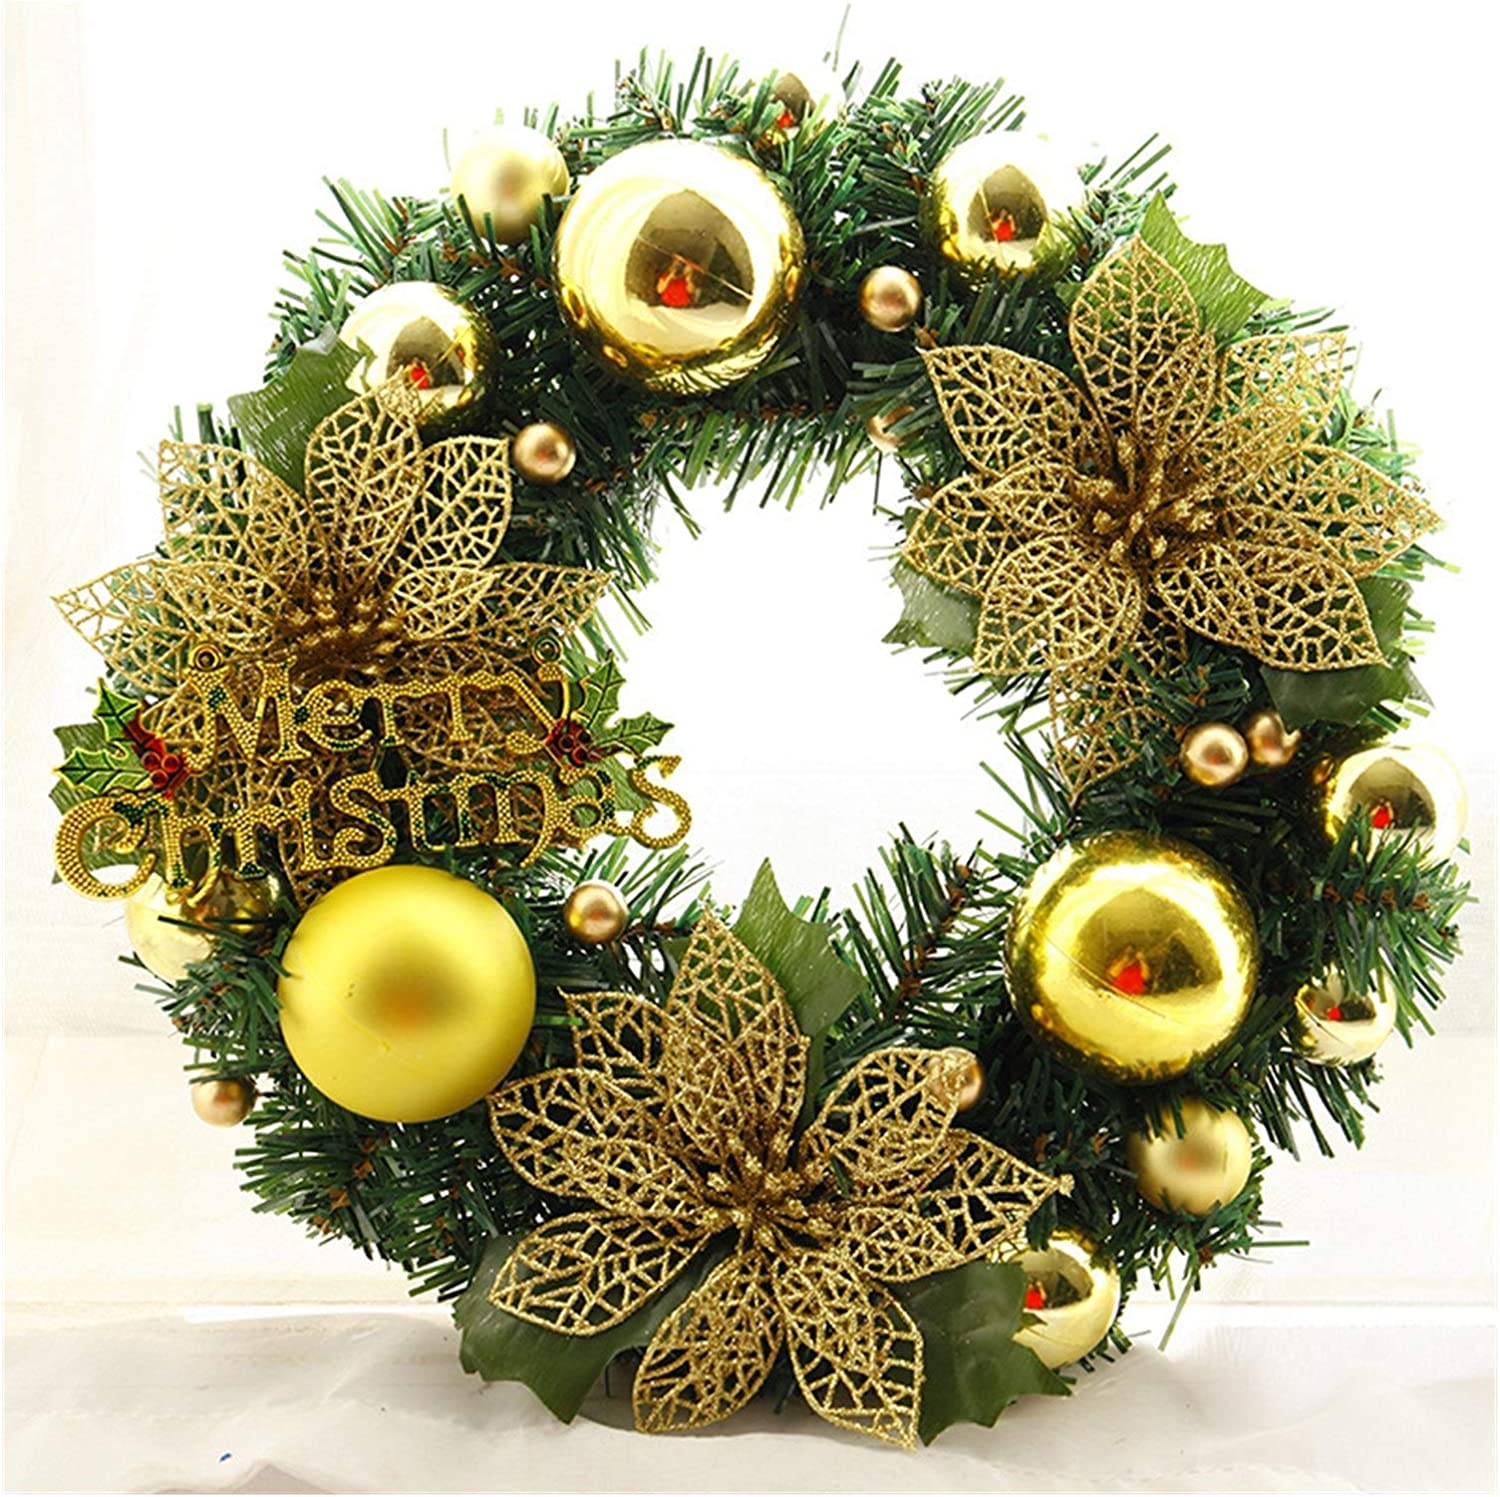 JDJD Christmas Wreath Handmade Purchase Rattan M Shopping Pendant Online limited product Garland